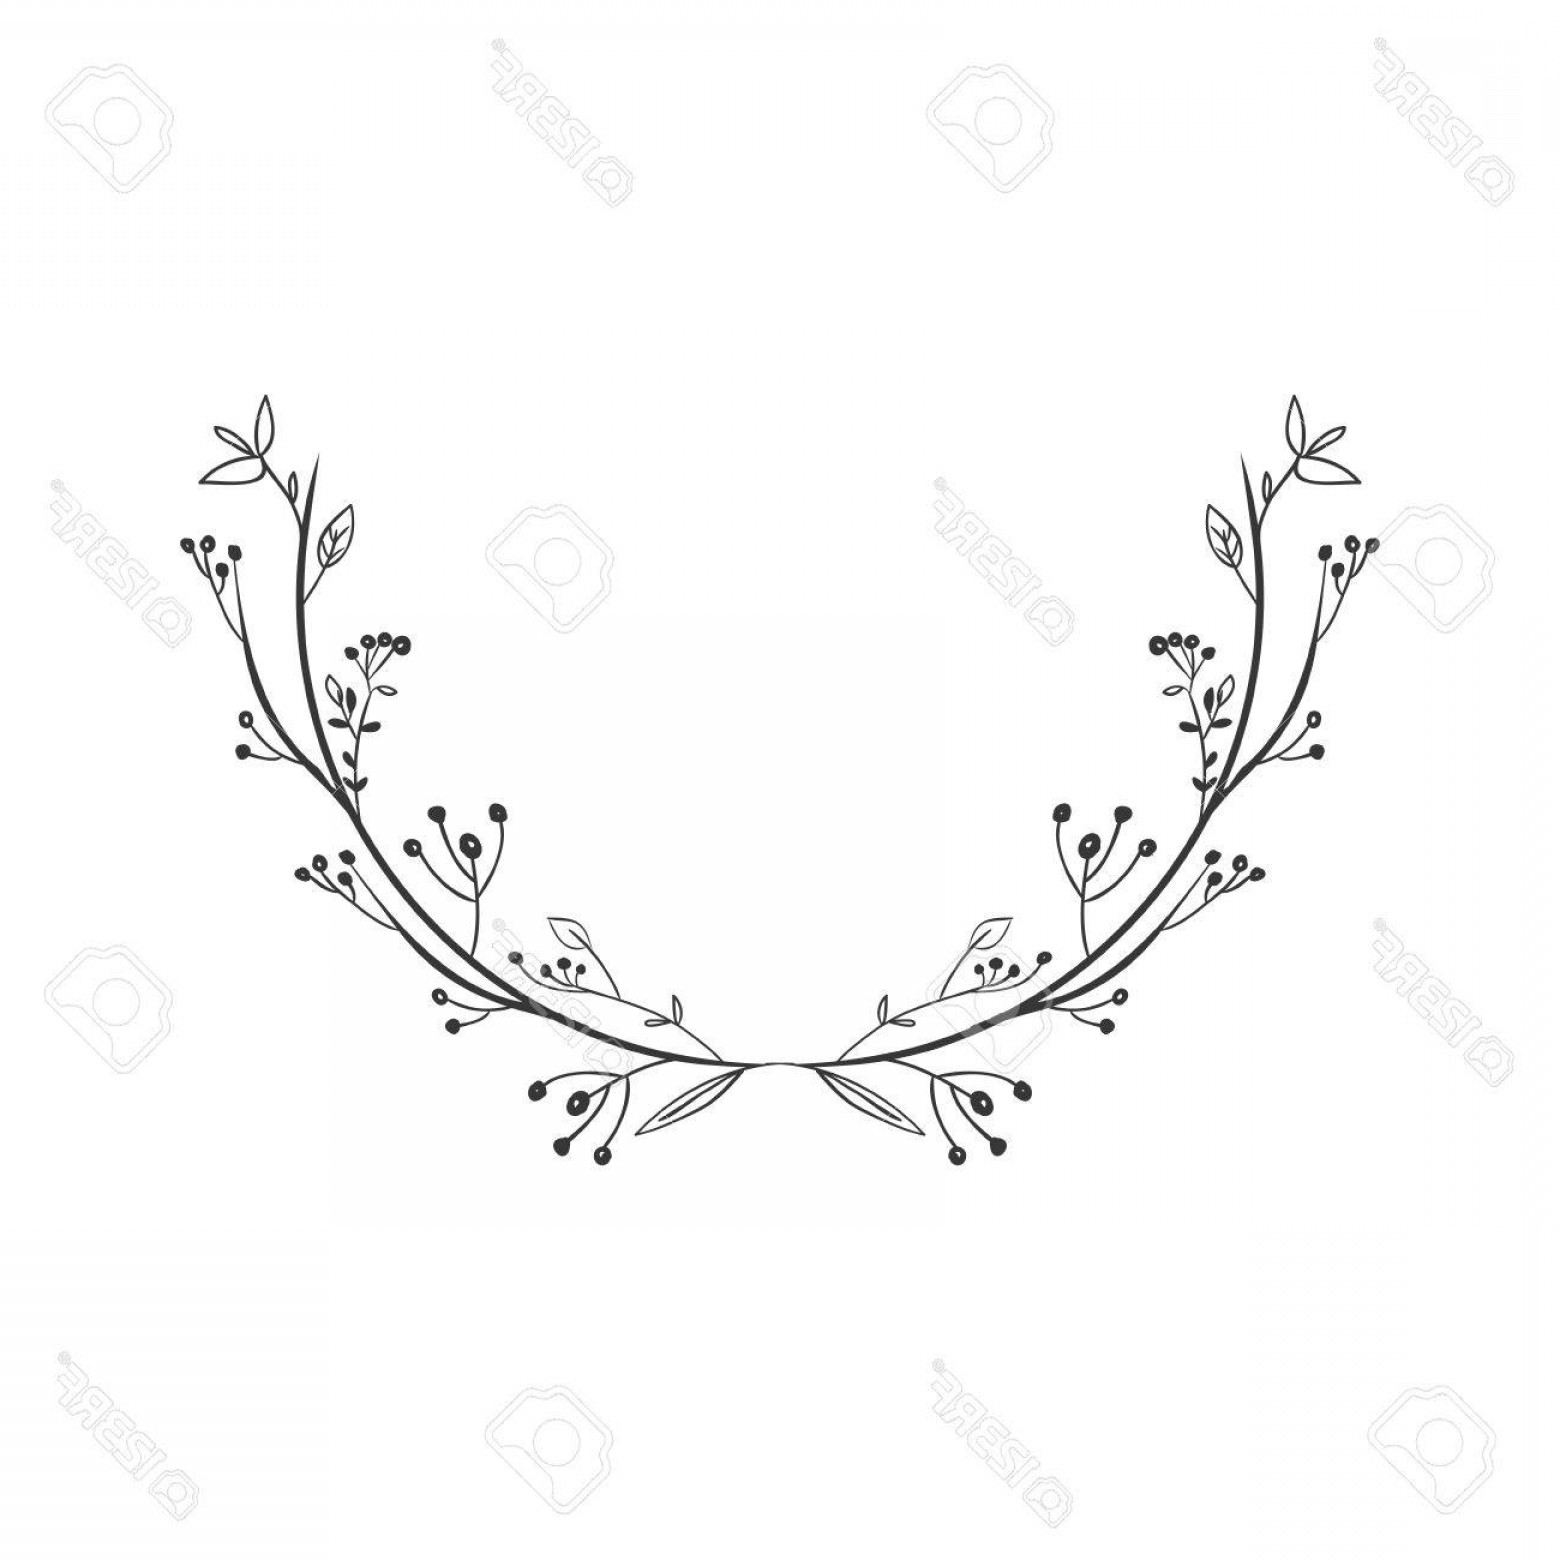 Floral Vector Illustration: Photostock Vector Gray Scale Decorative Simple Half Crown Floral Vector Illustration